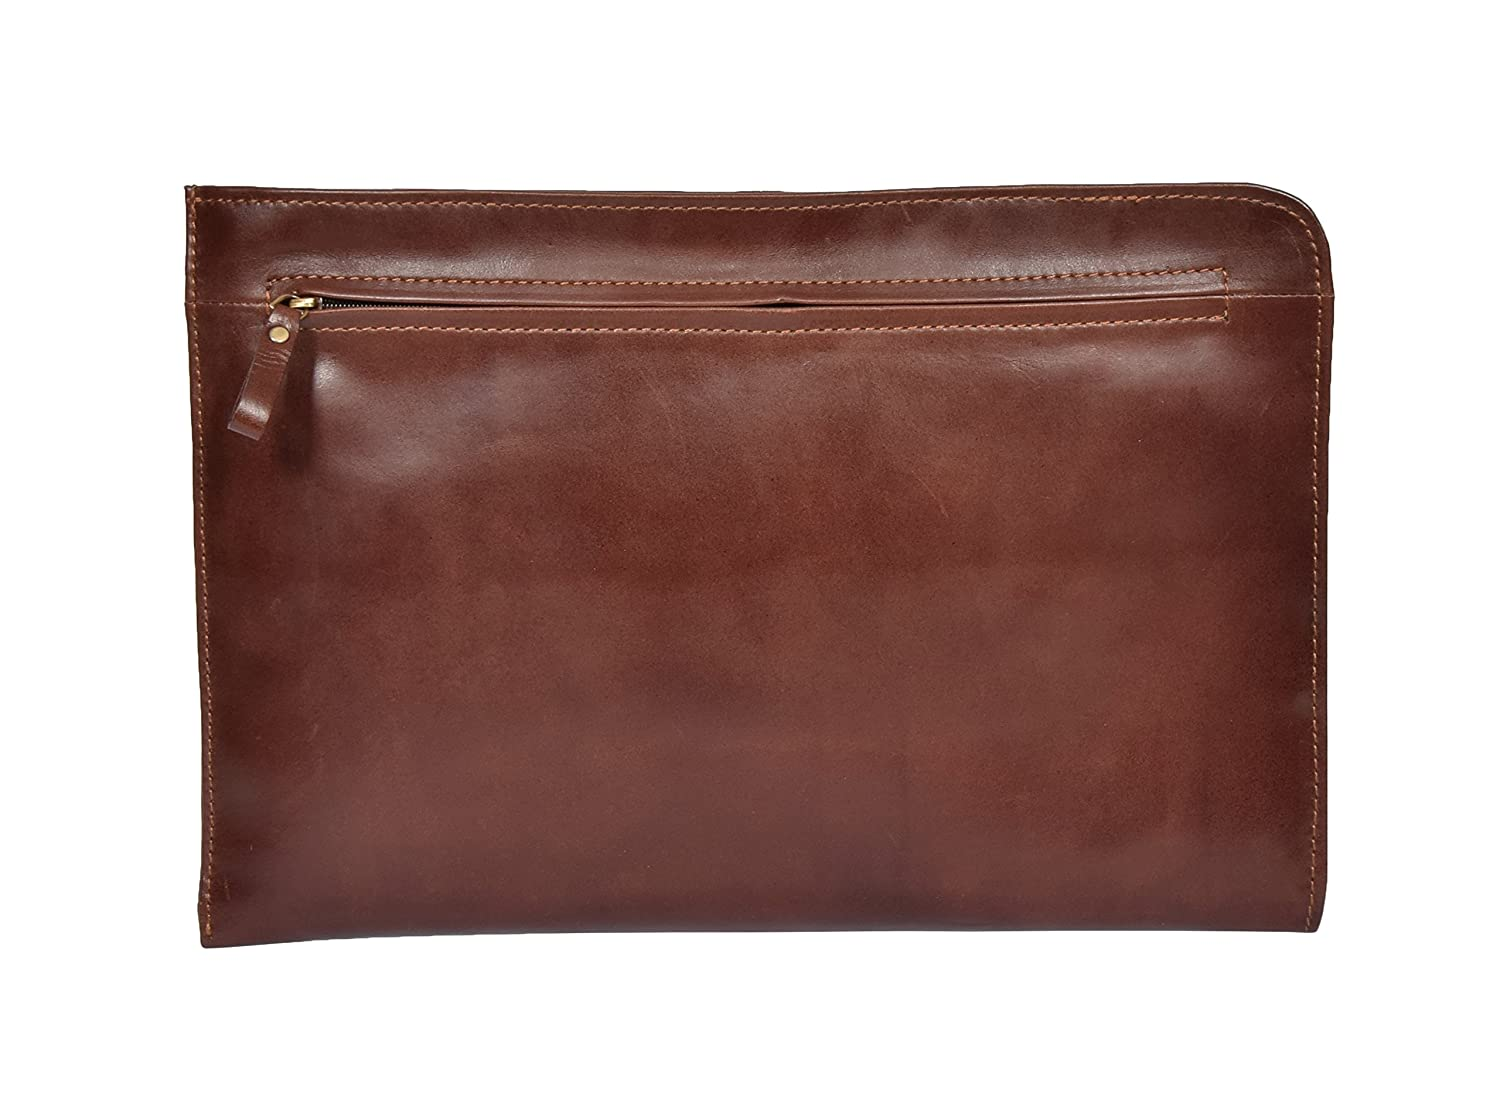 A4 Soft Leather Zip Around Underarm Folio Tablet File Document Office Brown Bag - Porto Porto Brown